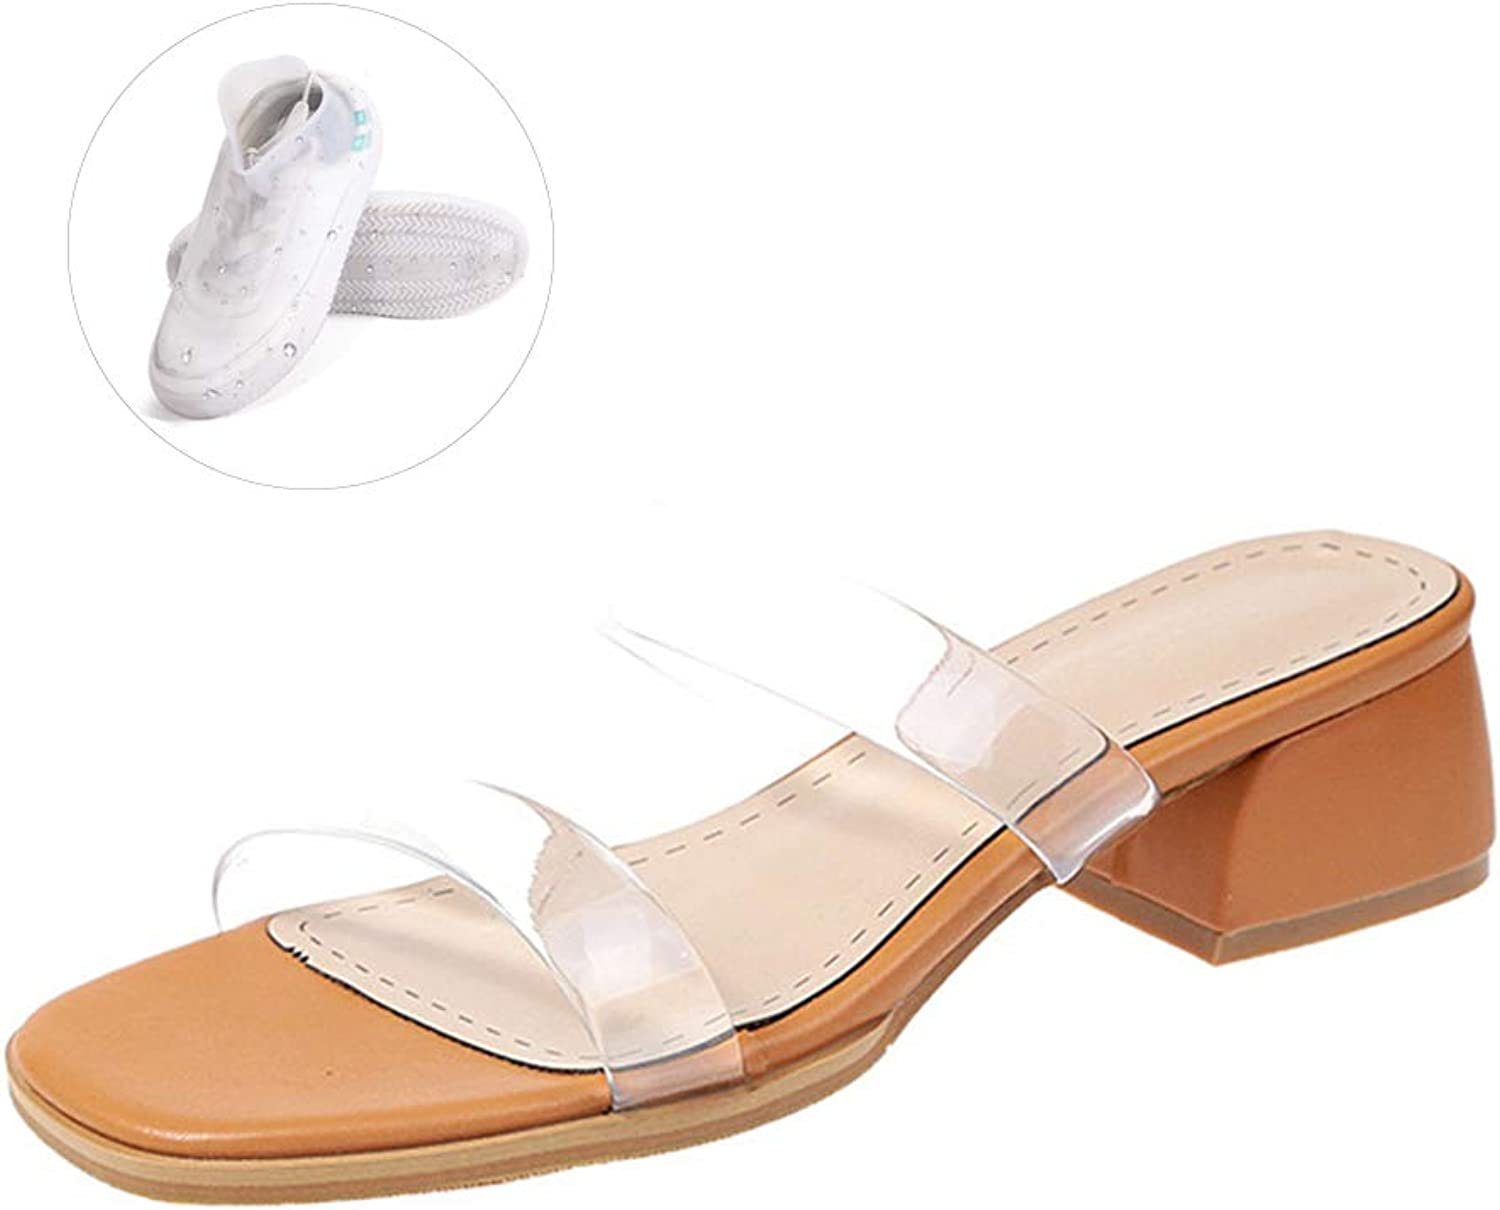 Summer Casual Sandals Women shoes PU Leather, Casual Open Toe Gladiator 4CM Crystal Summer Slippers shoes Women Sandals, with shoes Cover,Brown,7.5US